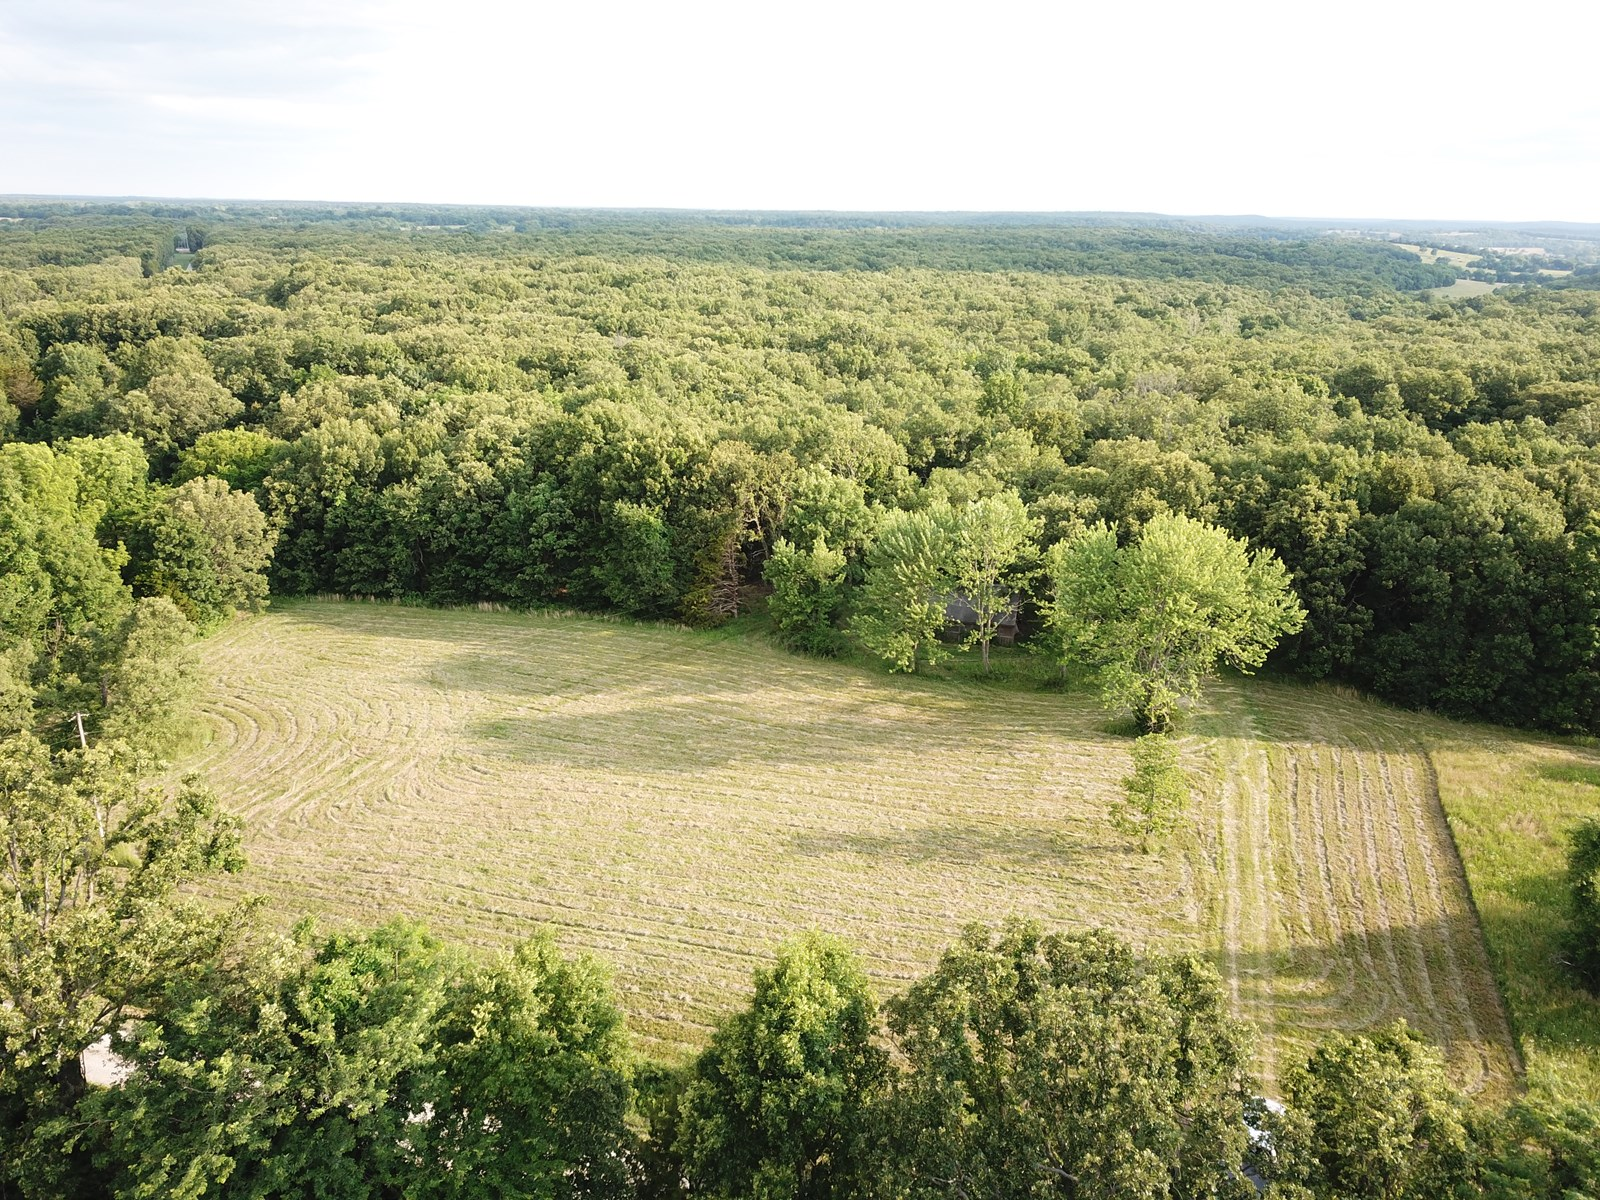 Land for sale in Osceola, MO 20 ac +/-